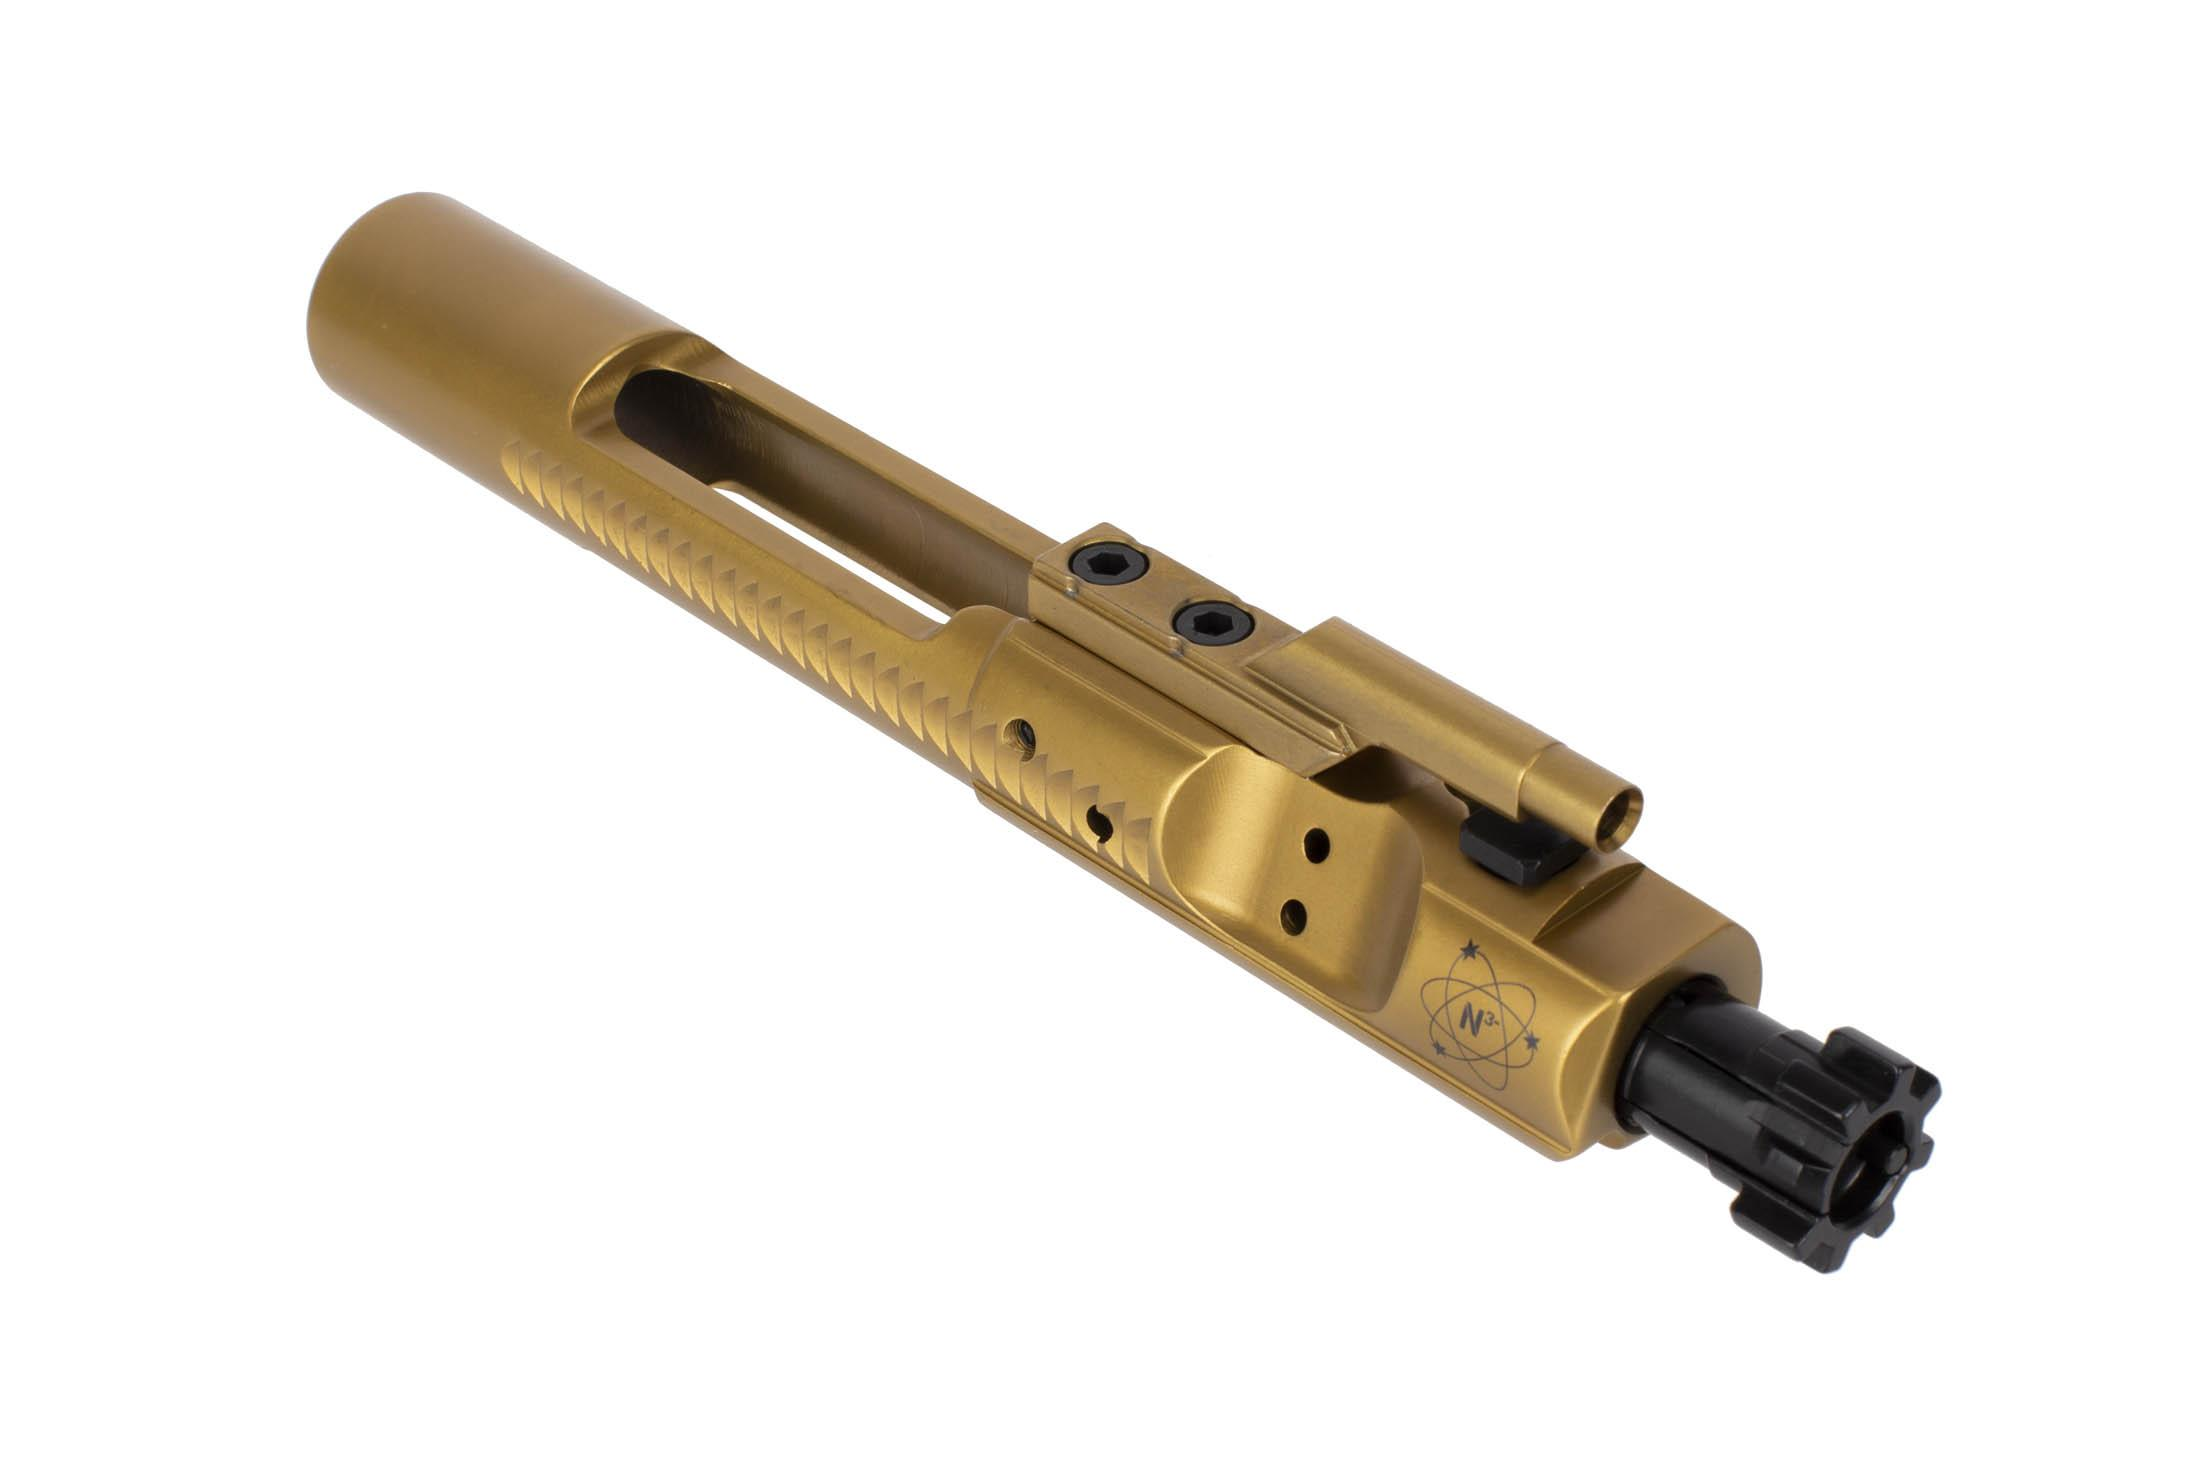 Nitrid3 Syst3ms .223/5.56/300 BLK v2.0 Match Grade Bolt Carrier Group - TiN and Black Nitride